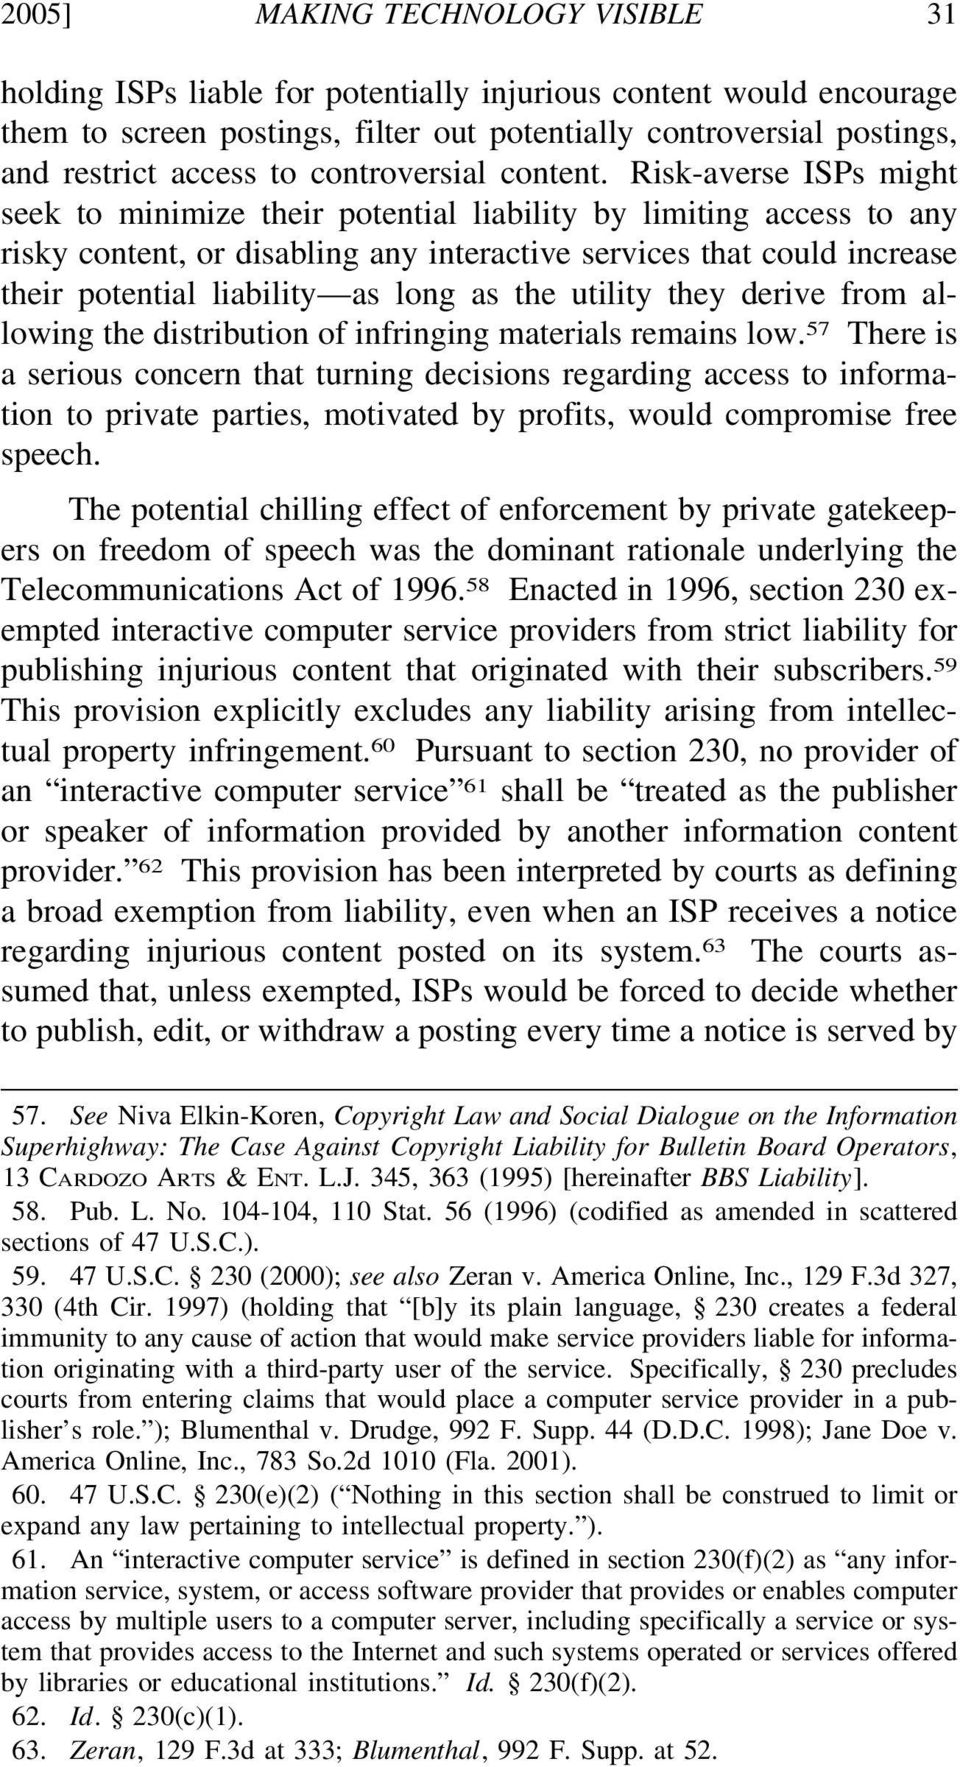 Risk-averse ISPs might seek to minimize their potential liability by limiting access to any risky content, or disabling any interactive services that could increase their potential liability as long